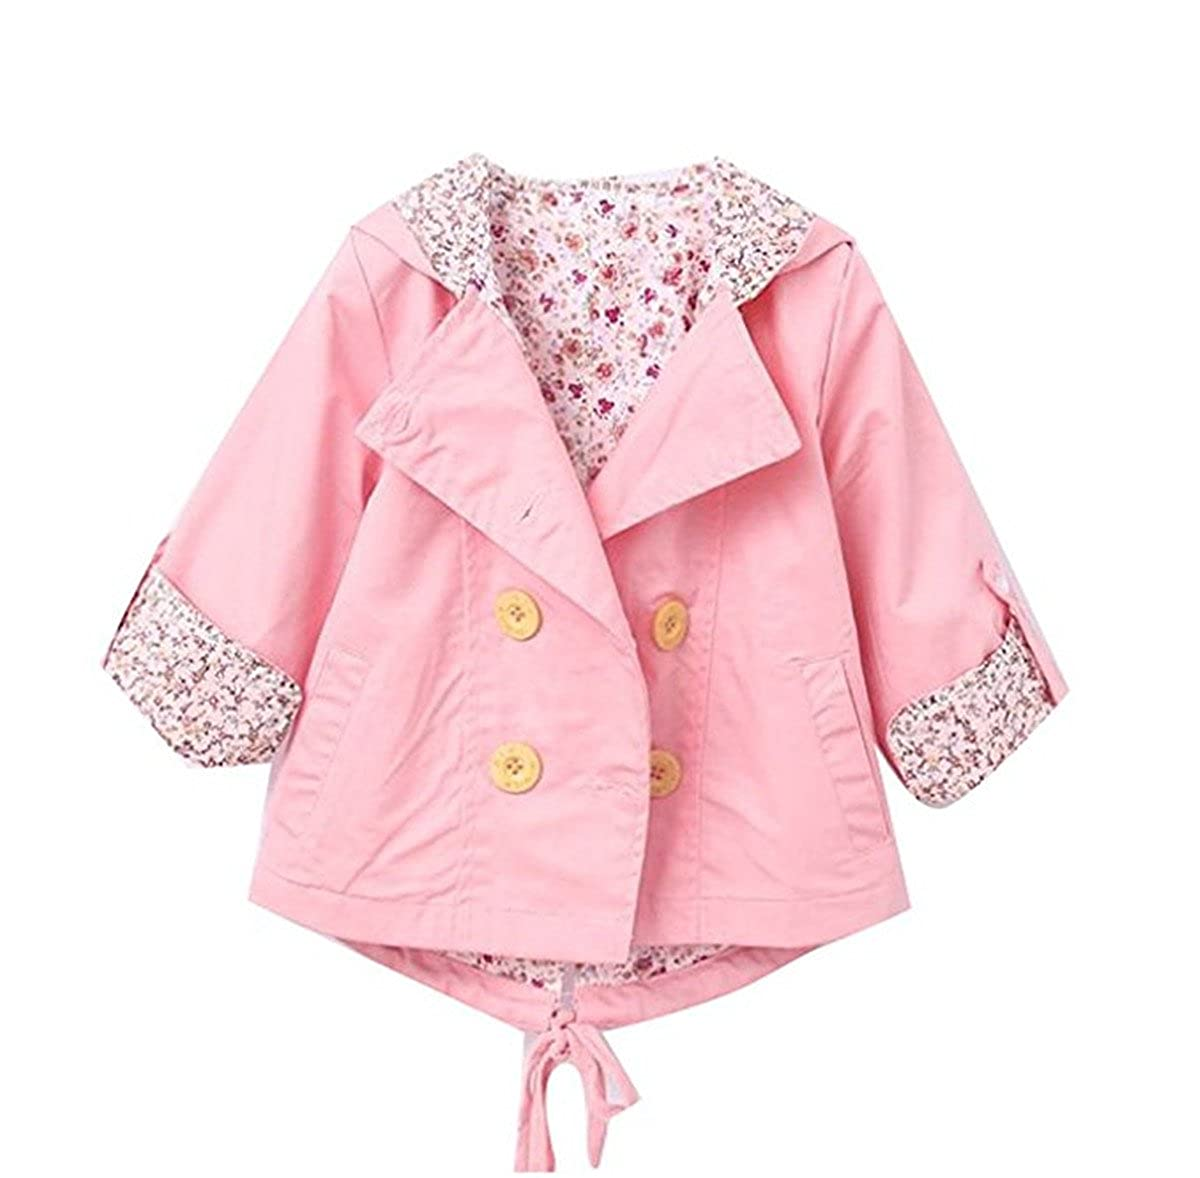 Baby Kid Little Girls Spring Autumn Fashion Double Breasted Trench Coat Jacket WINDEB031